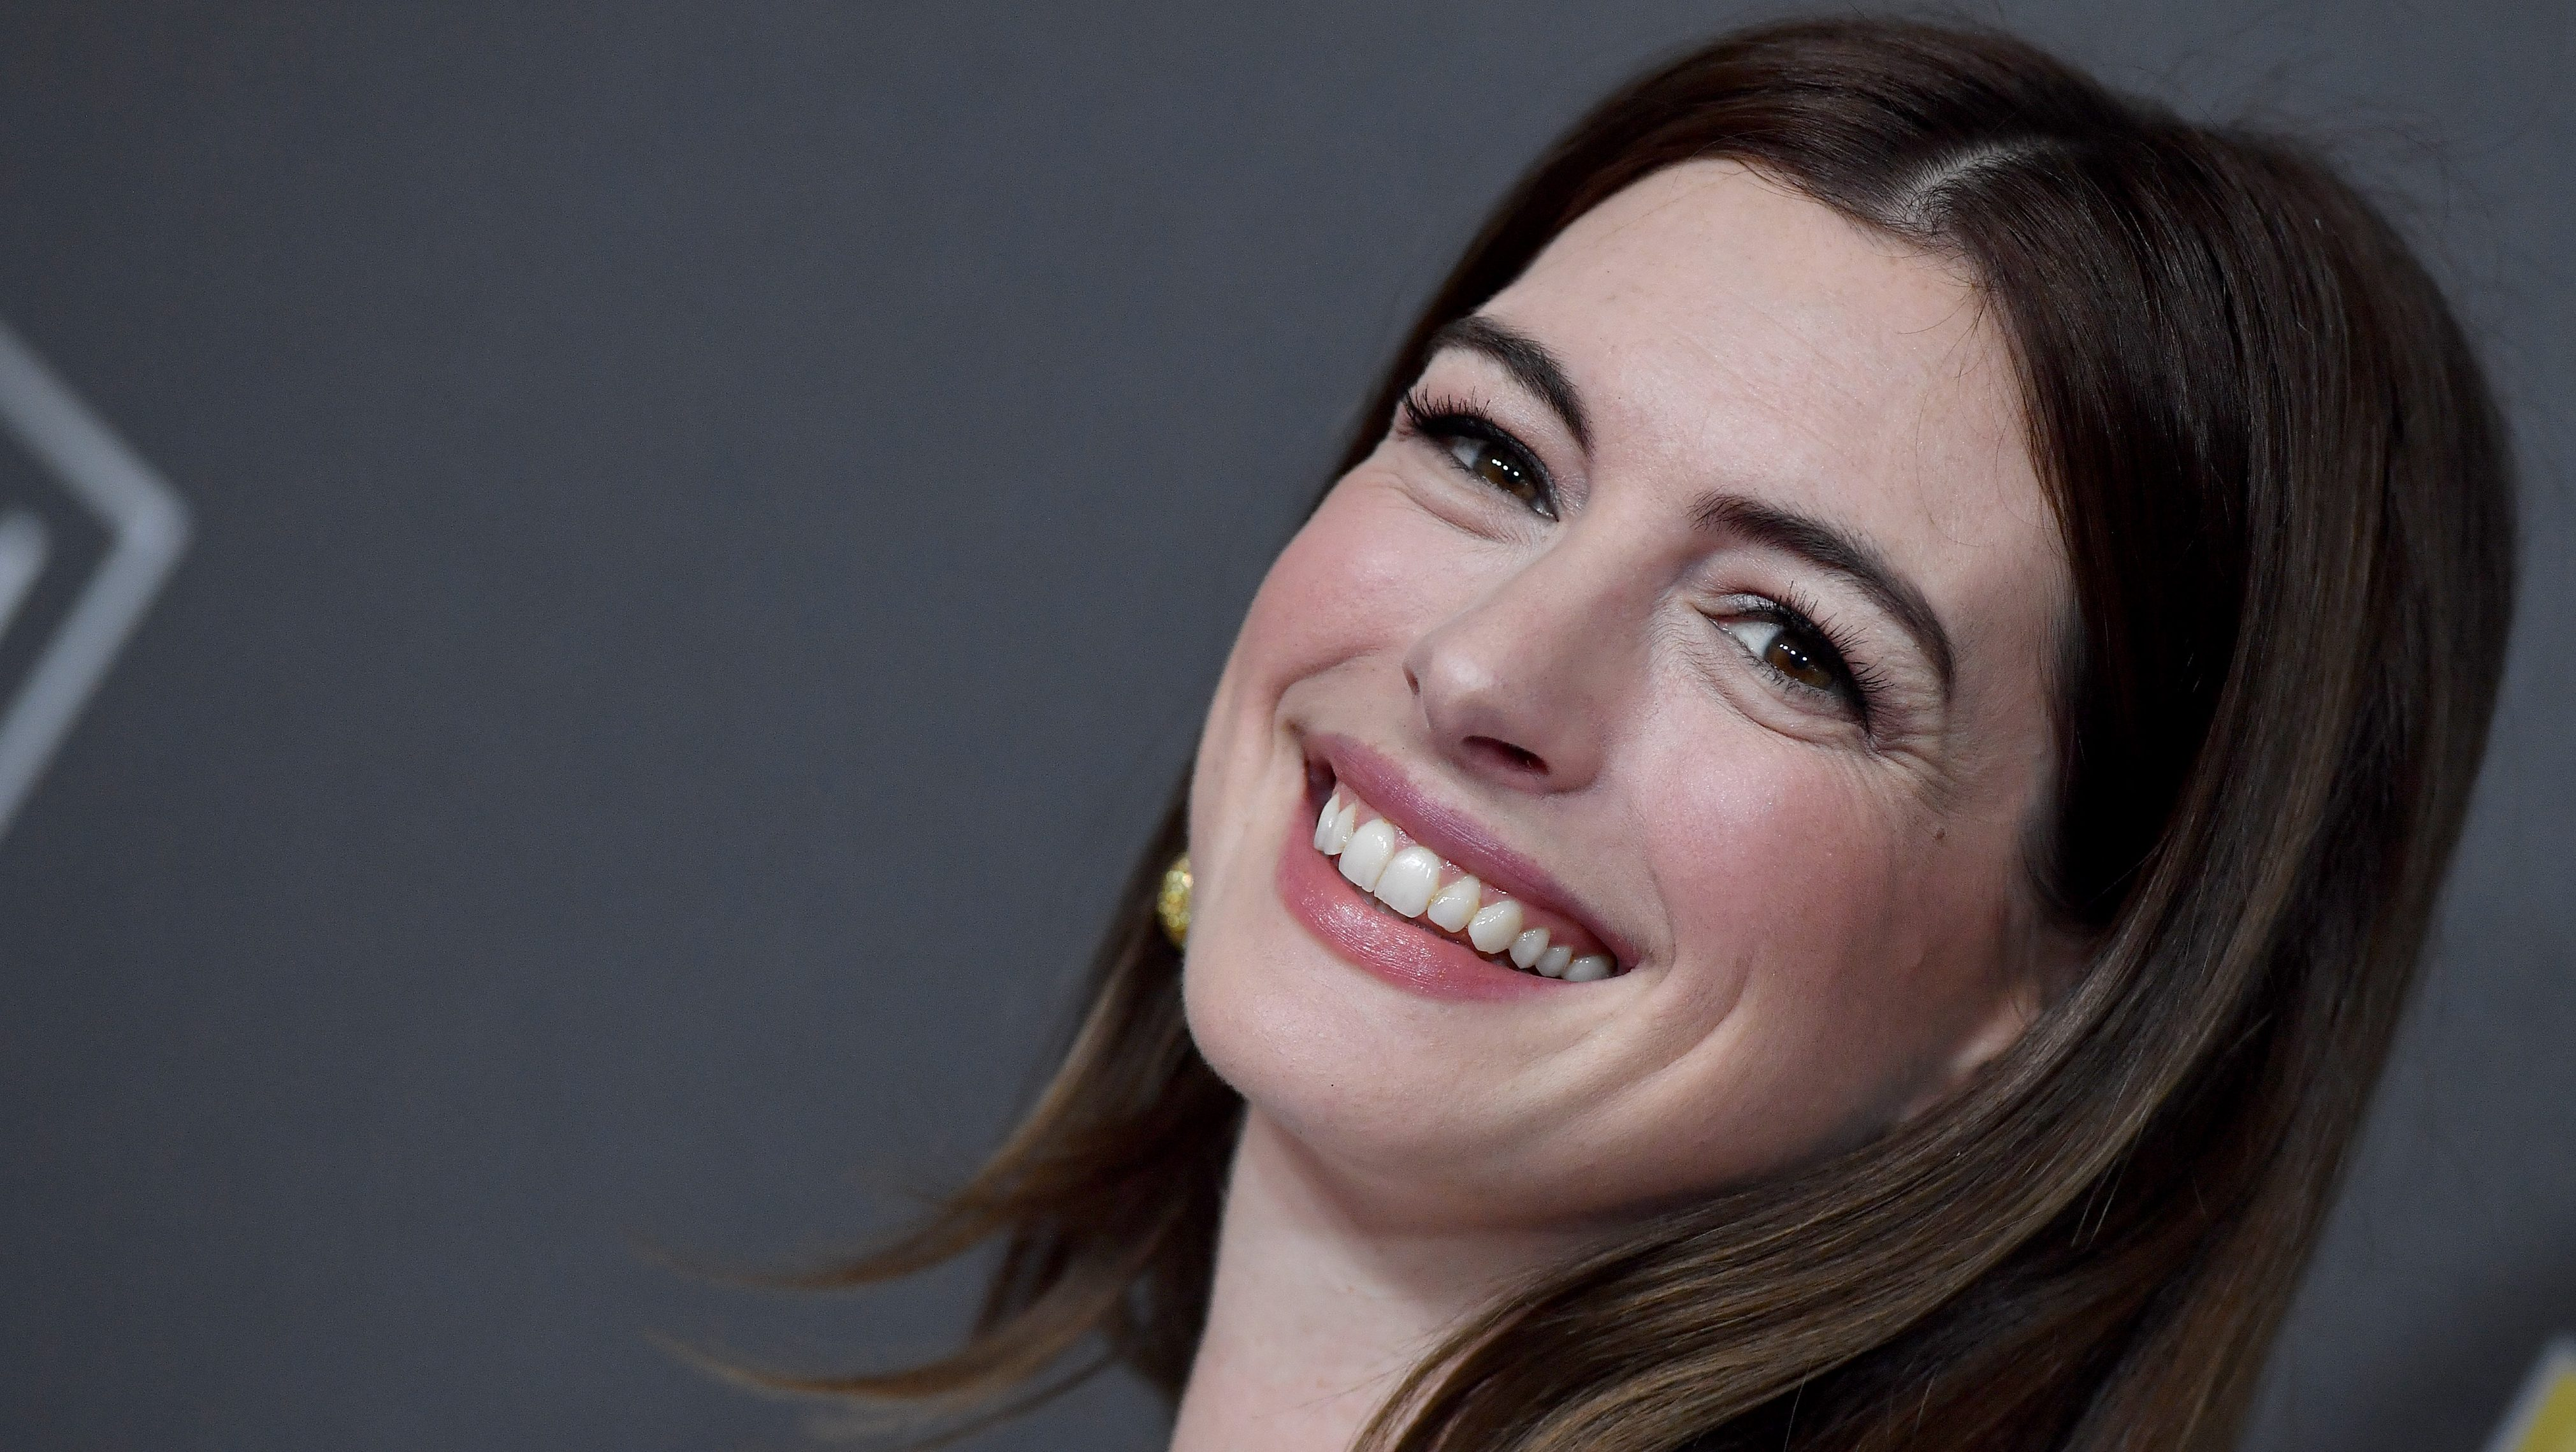 Anne Hathaway Actually Has the Cutest Winter Wardrobe We've Ever Seen